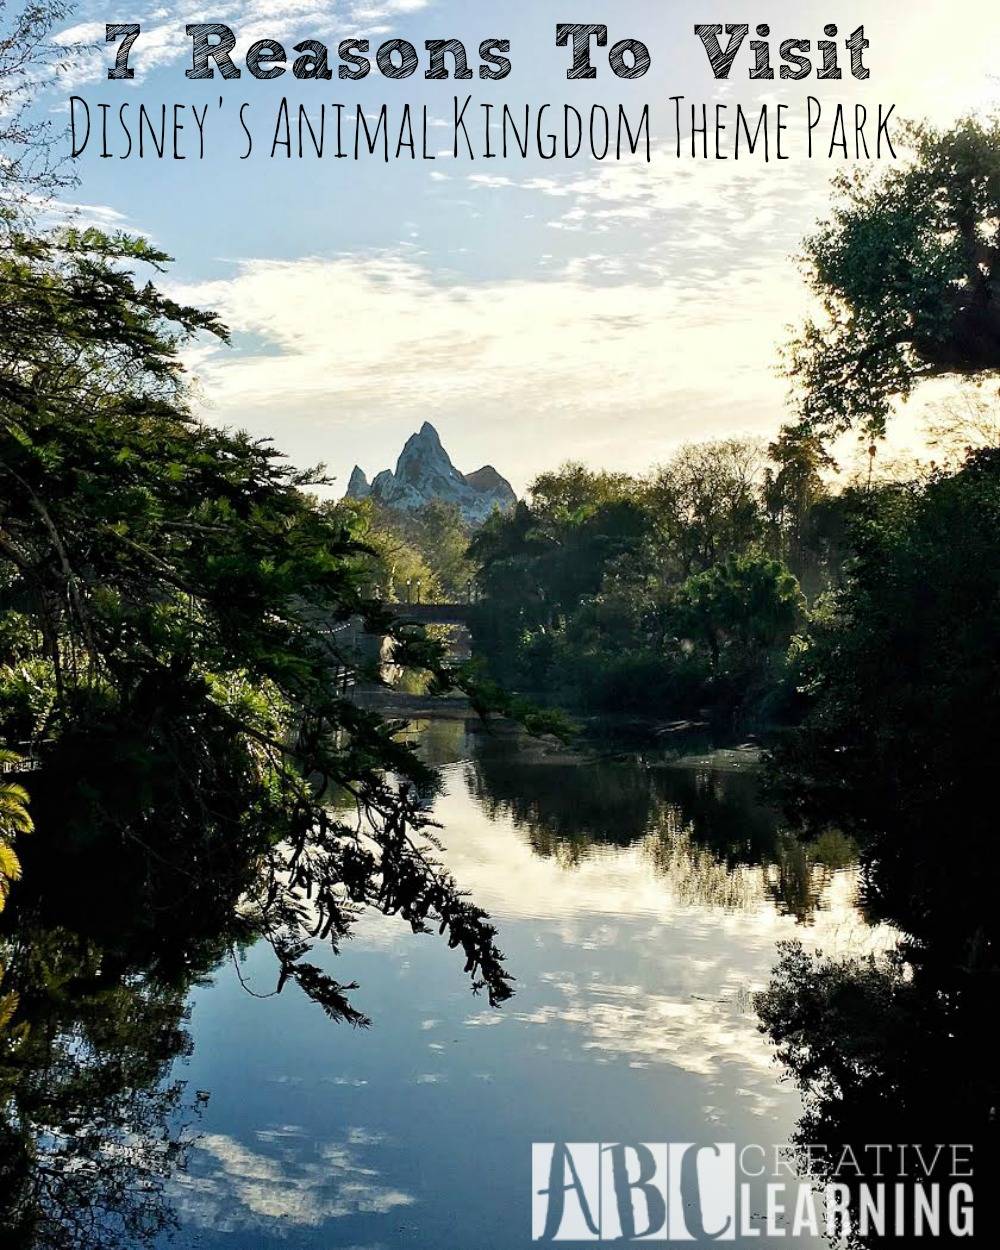 7 Reasons To Visit Disney's Animal Kingdom Theme Park 0